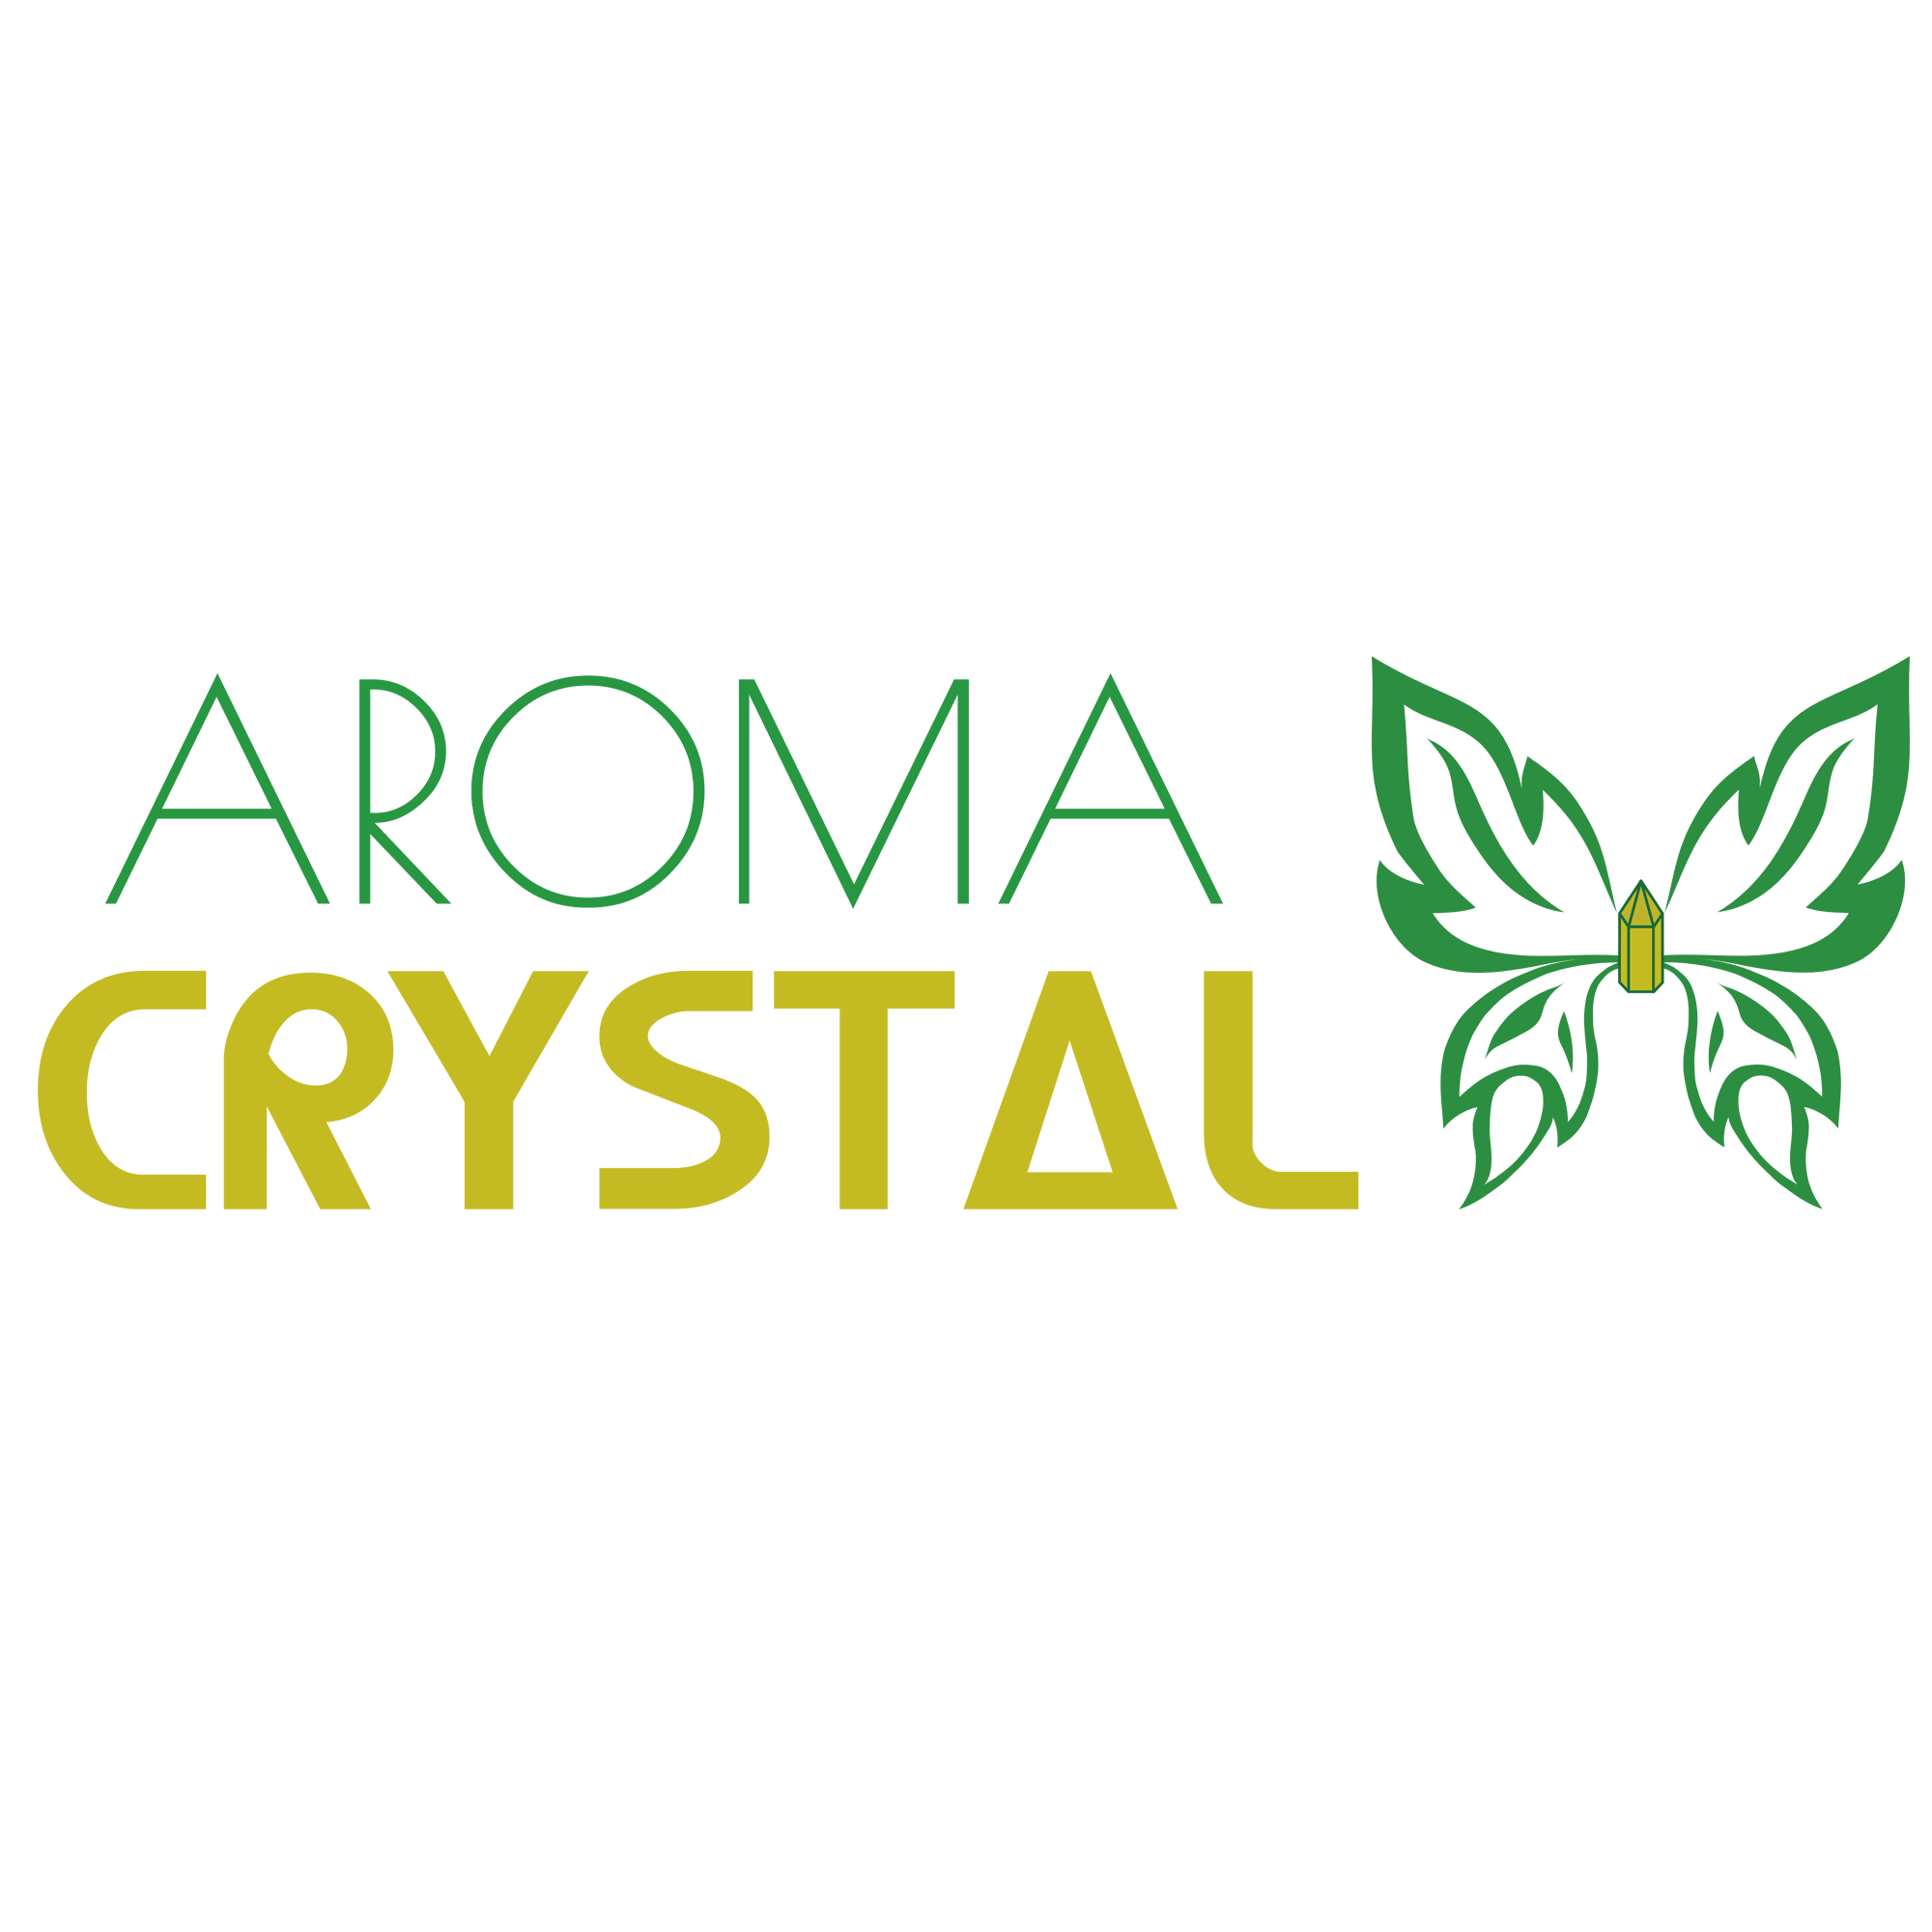 1 Client aromacrystal